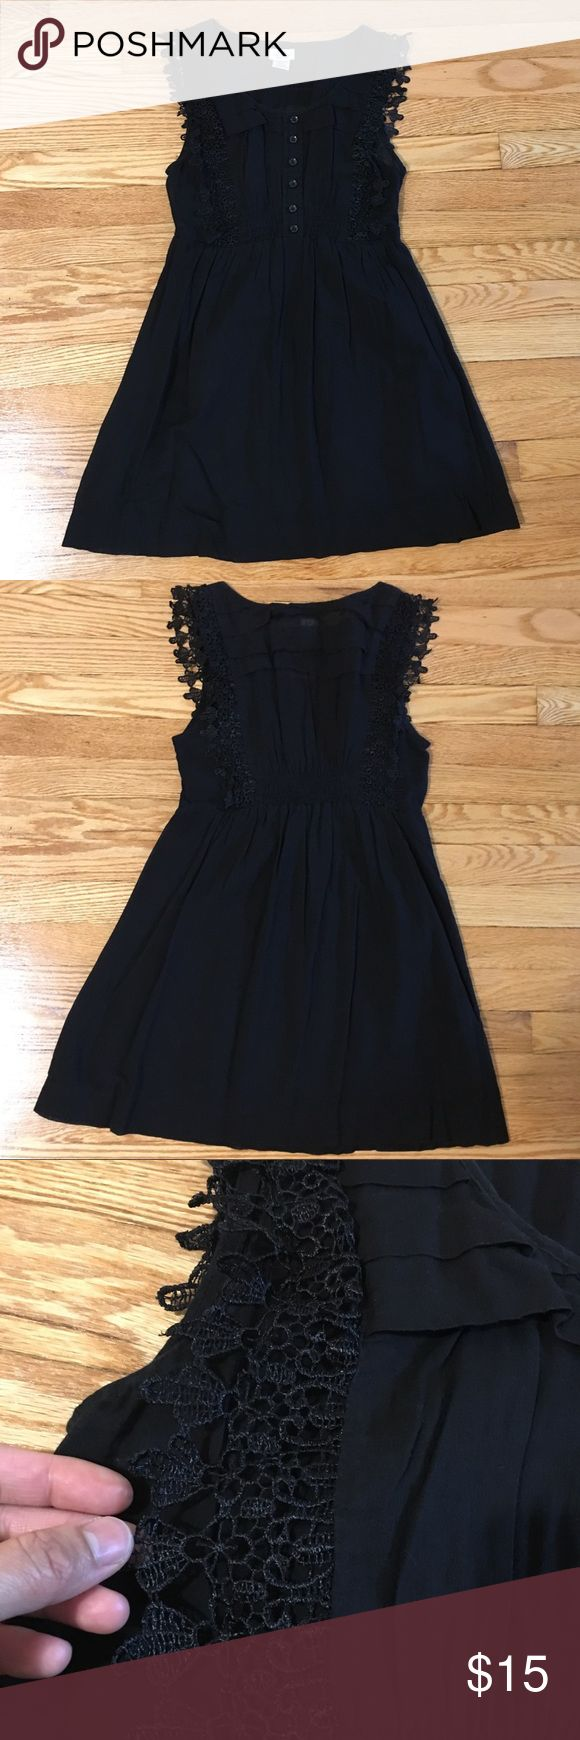 S Line Black Sundress S Line Black Sundress with lace detailing - excellent condition. Super comfy and lightweight with lined skirt. 100% cotton. Perfect for the beach as a coverup or a casual night out! S Line Dresses